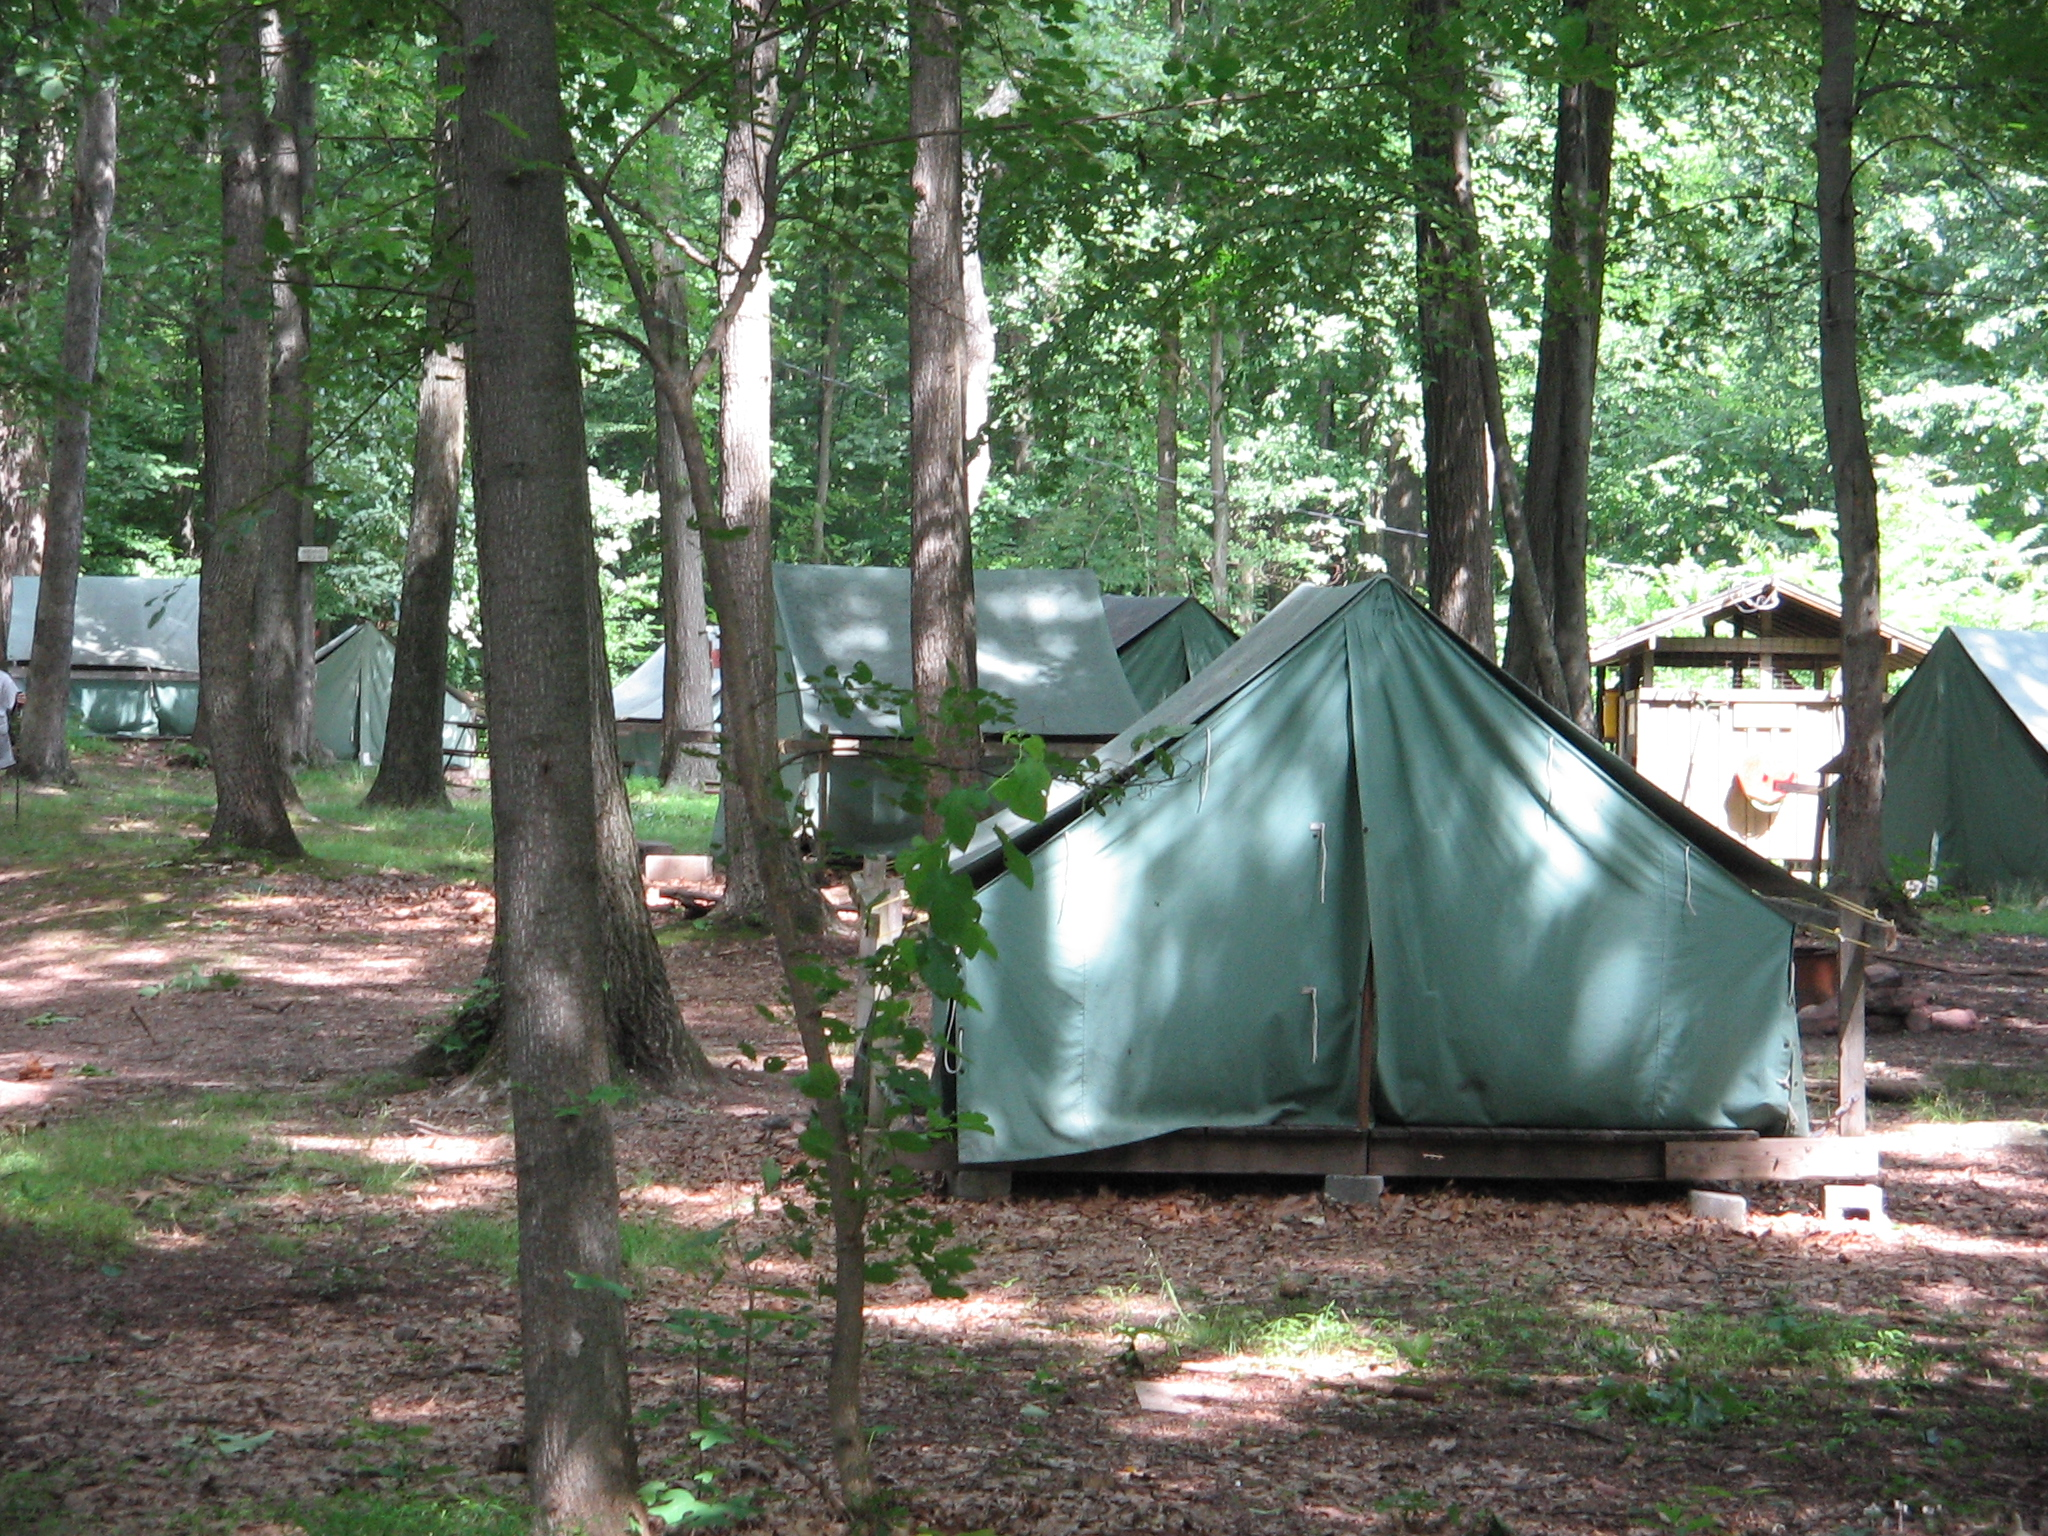 J. Edward Mack Scout Reservation